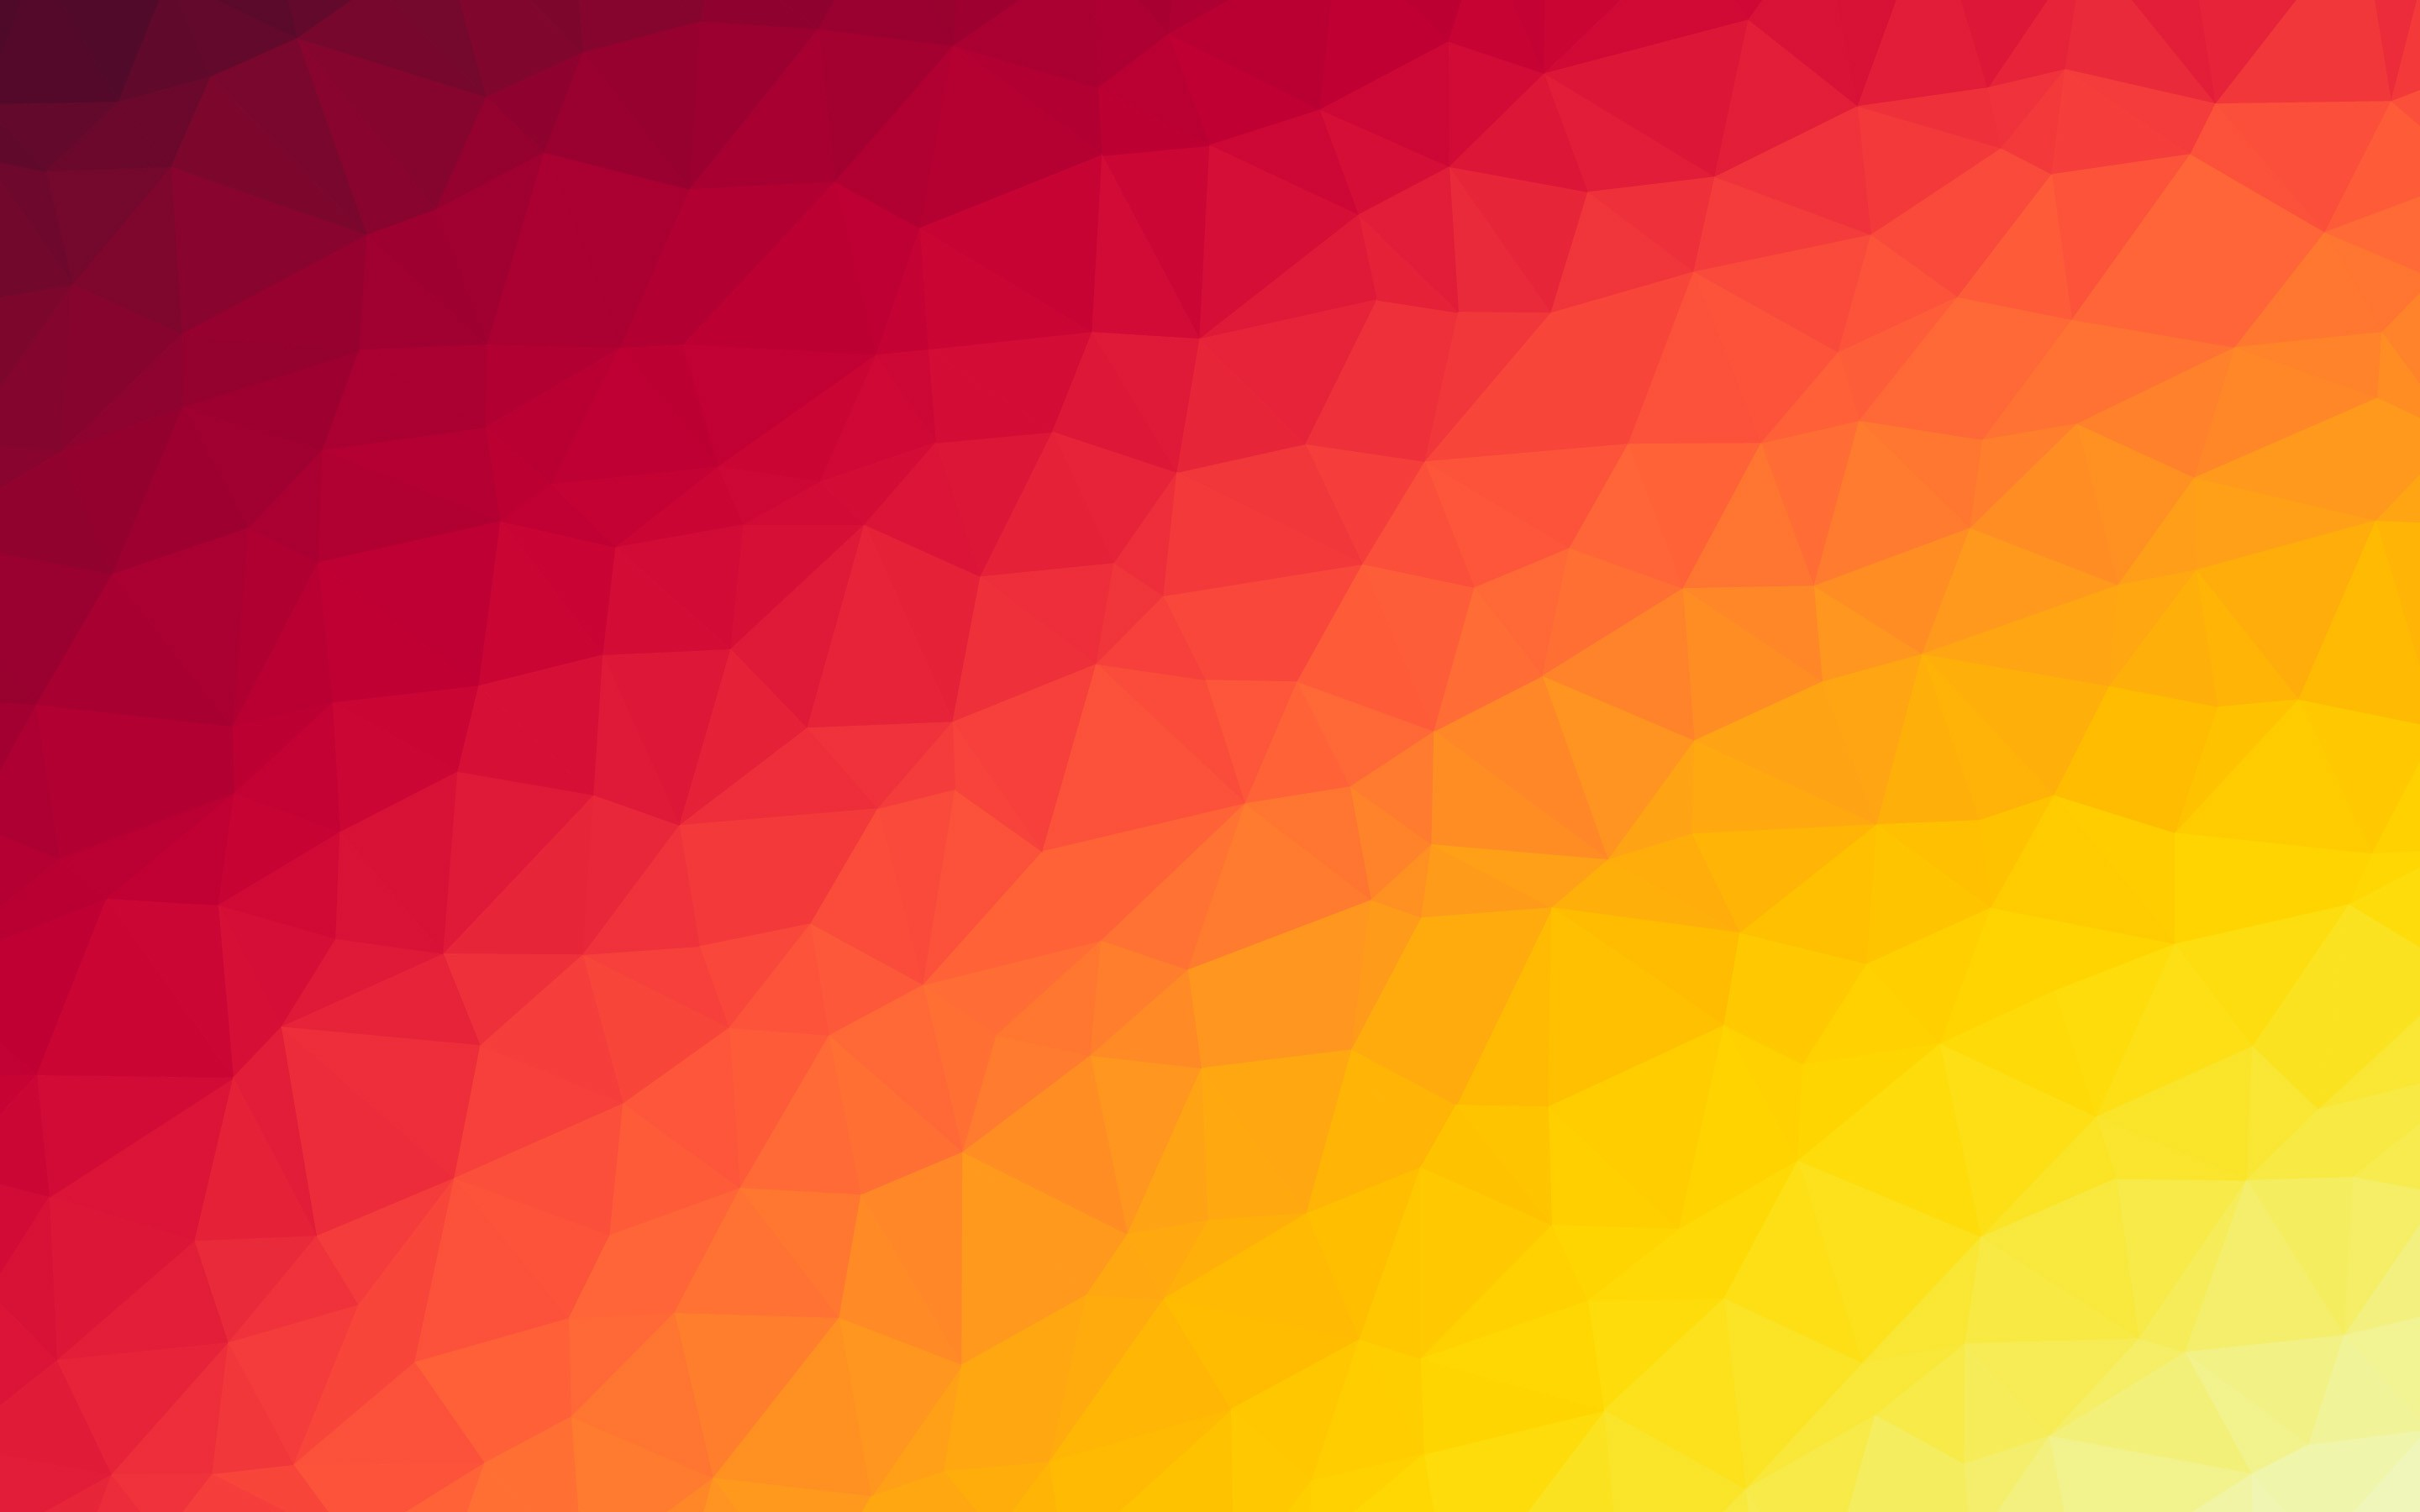 Colourful Html background image with red and yellow gradient shades with texture